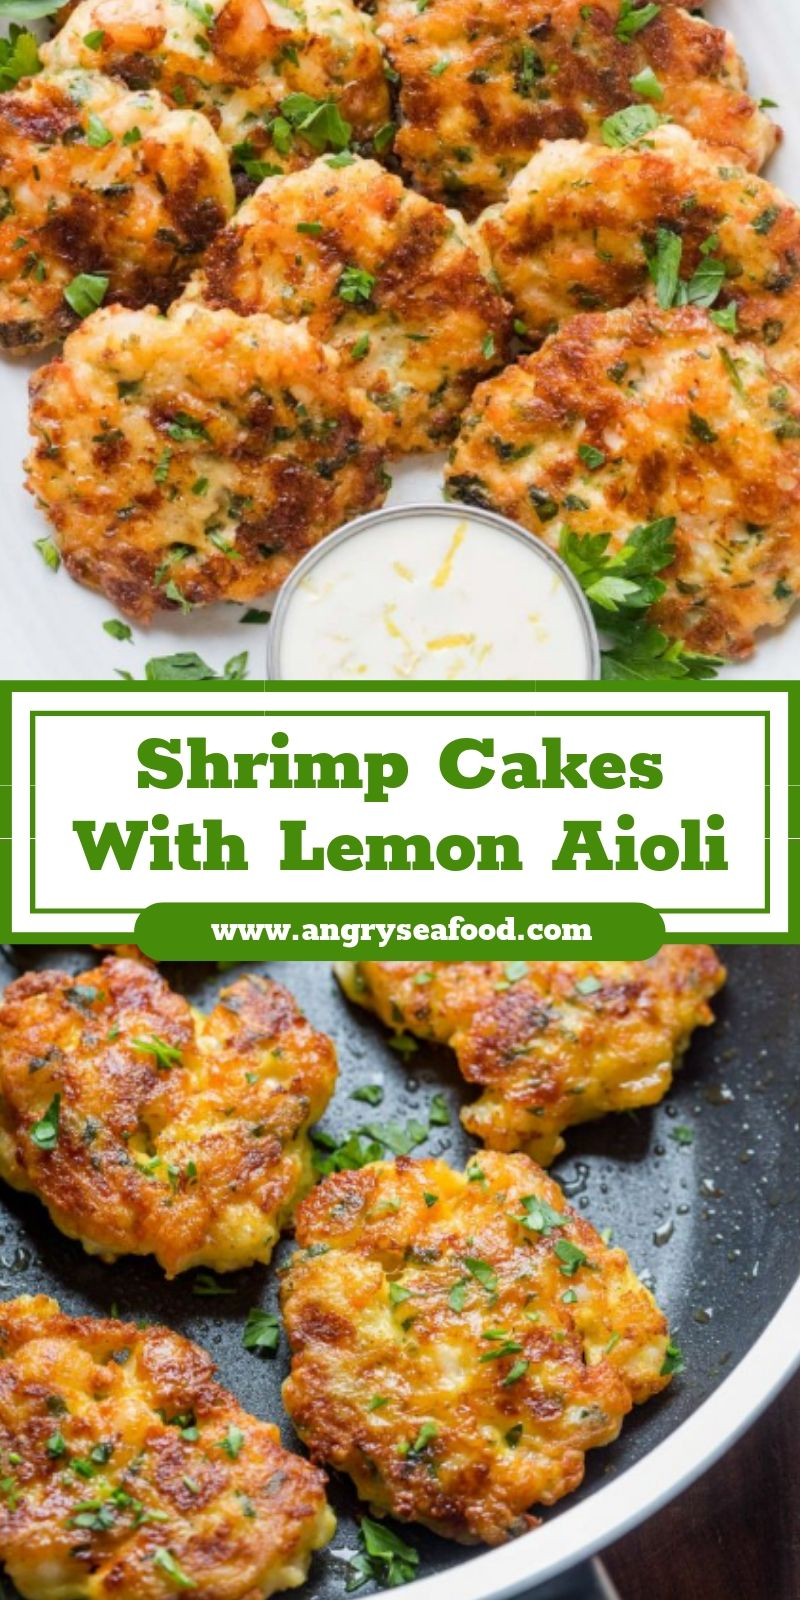 Shrimp Cakes With Lemon Aioli